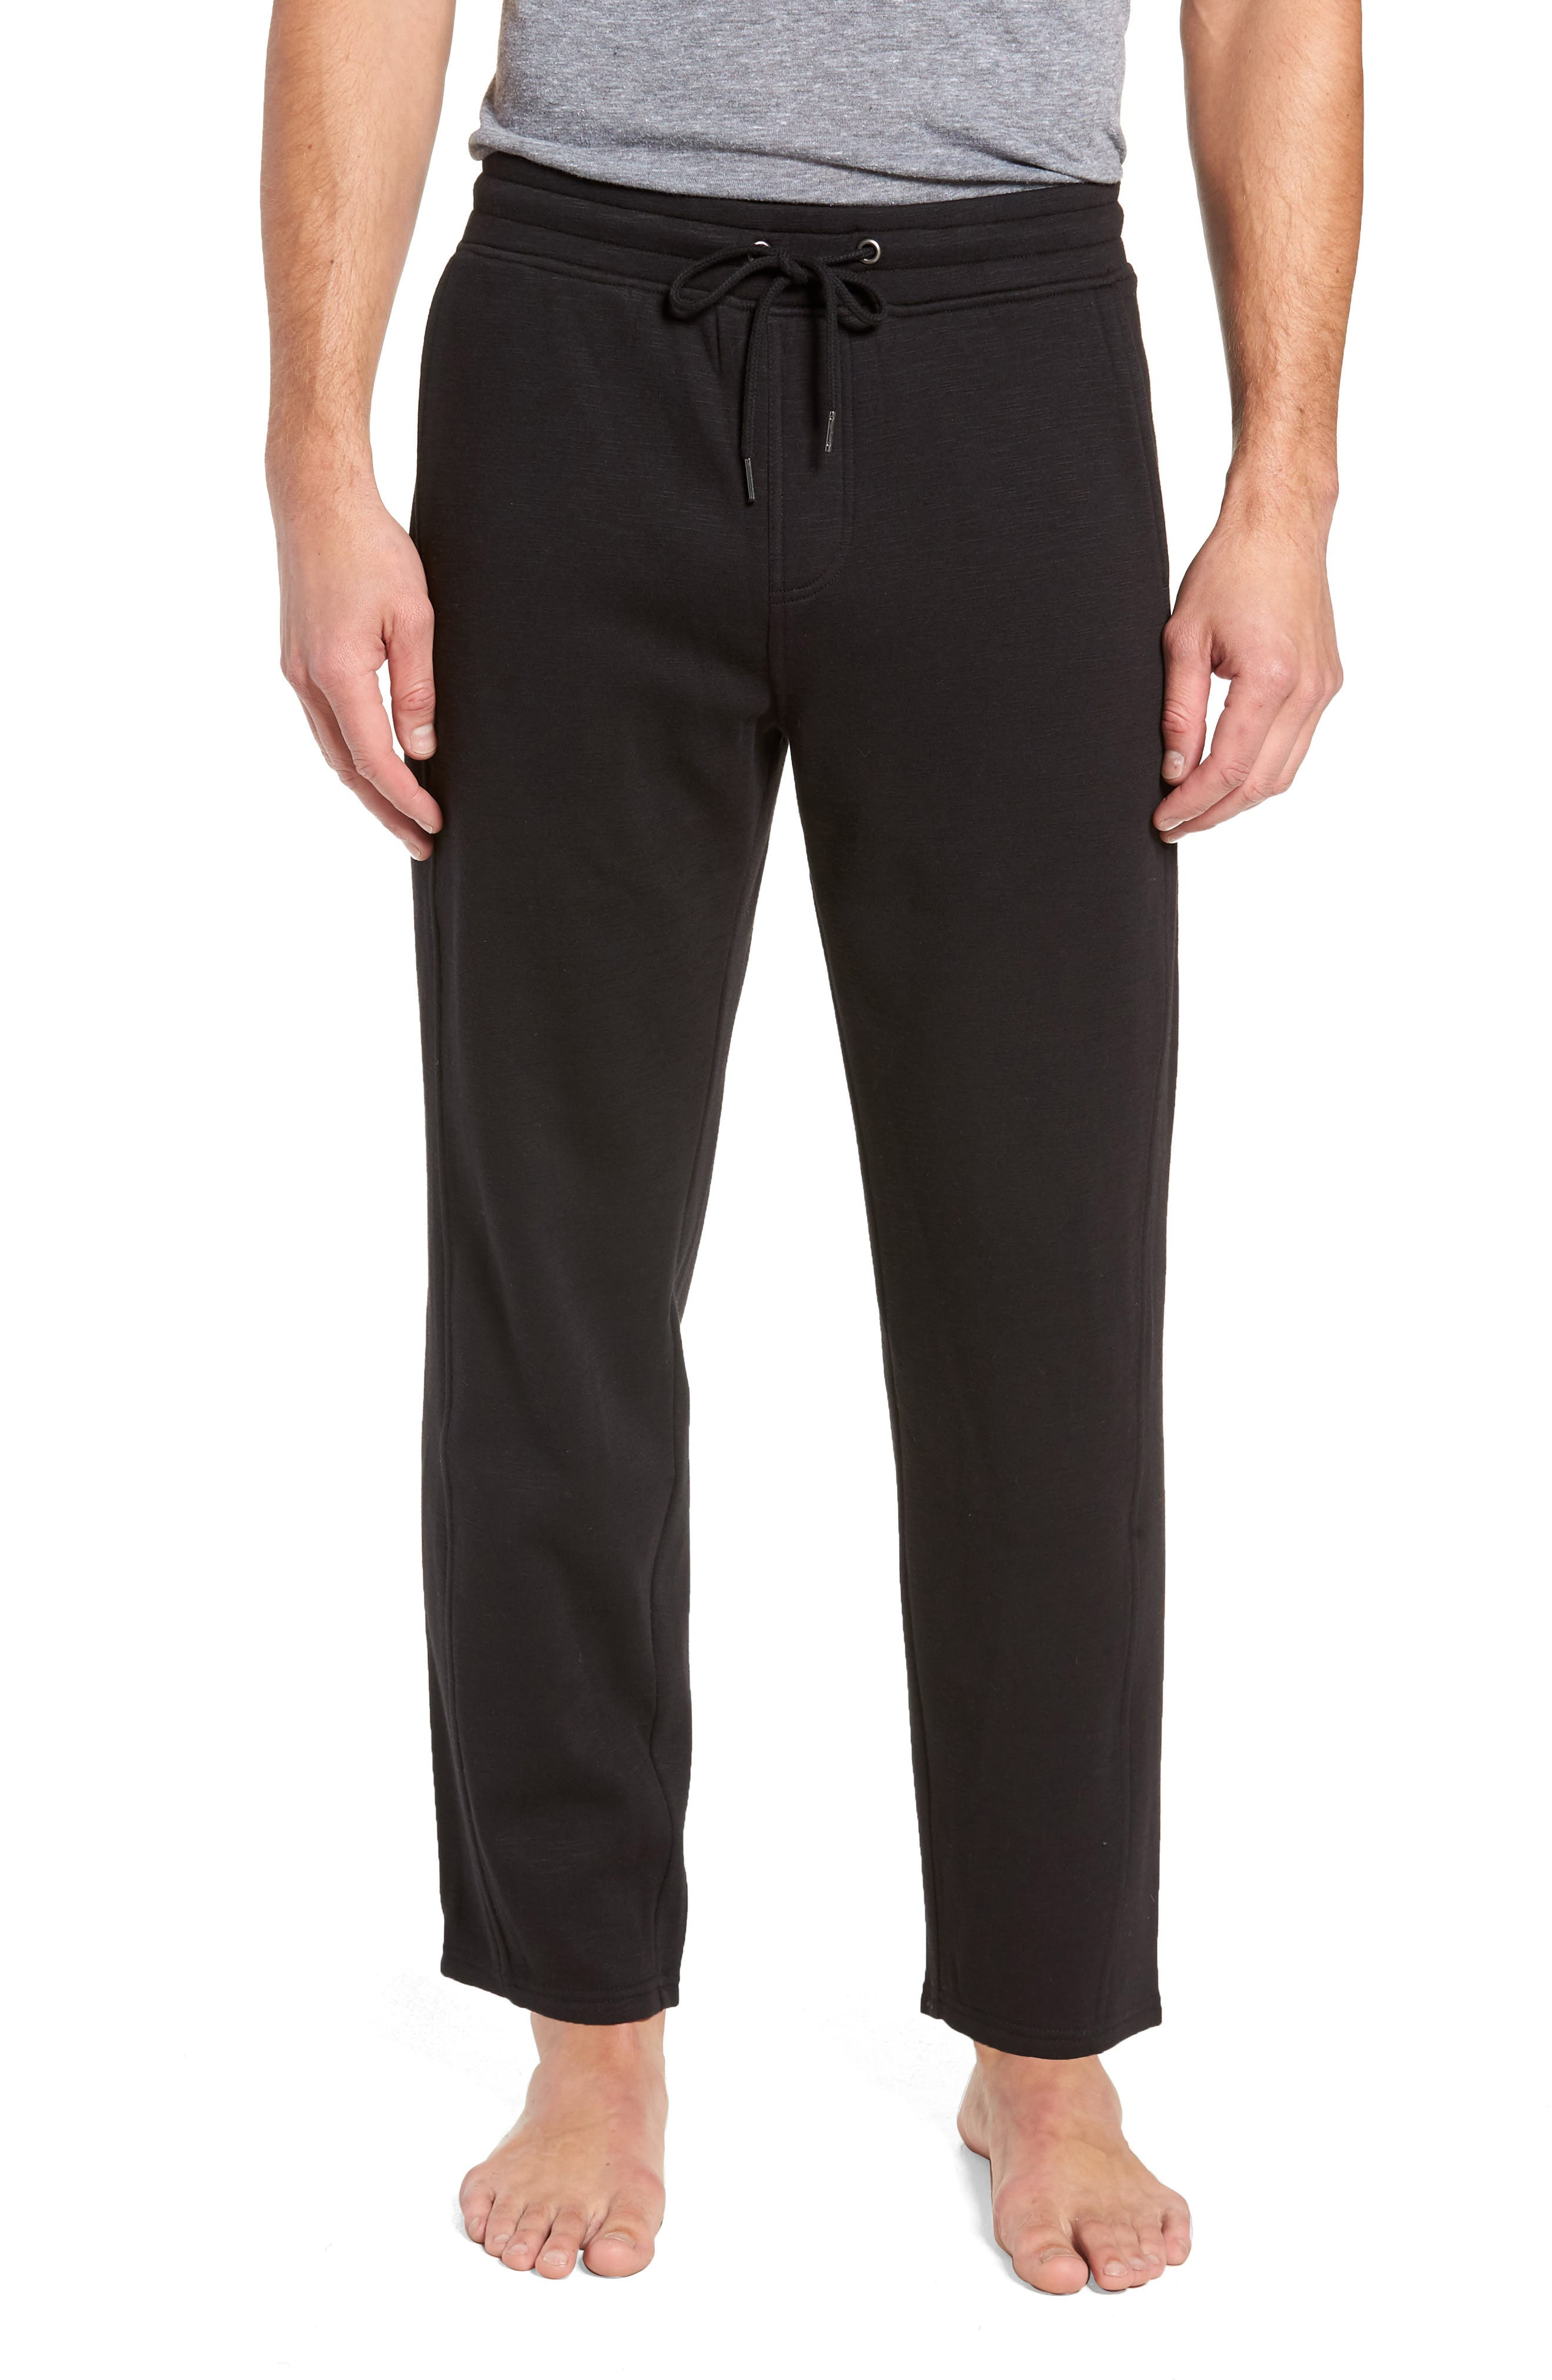 French Terry Moto Pants,                         Main,                         color, BLACK HEATHER